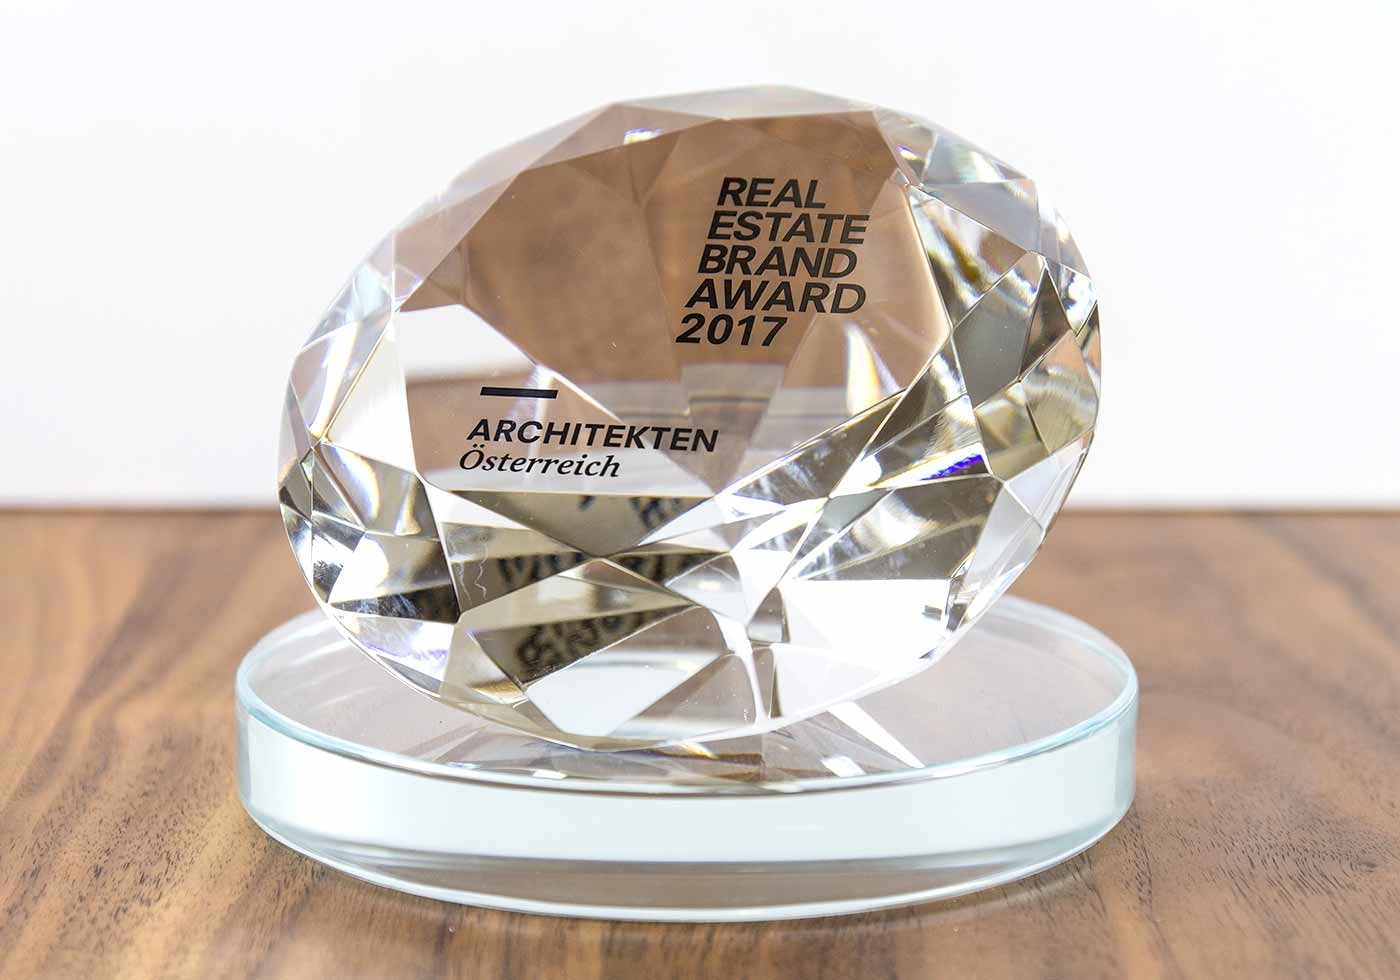 REAL ESTATE BRAND AWARD 2017. Photo: EUREB-Institute/Philip Miram